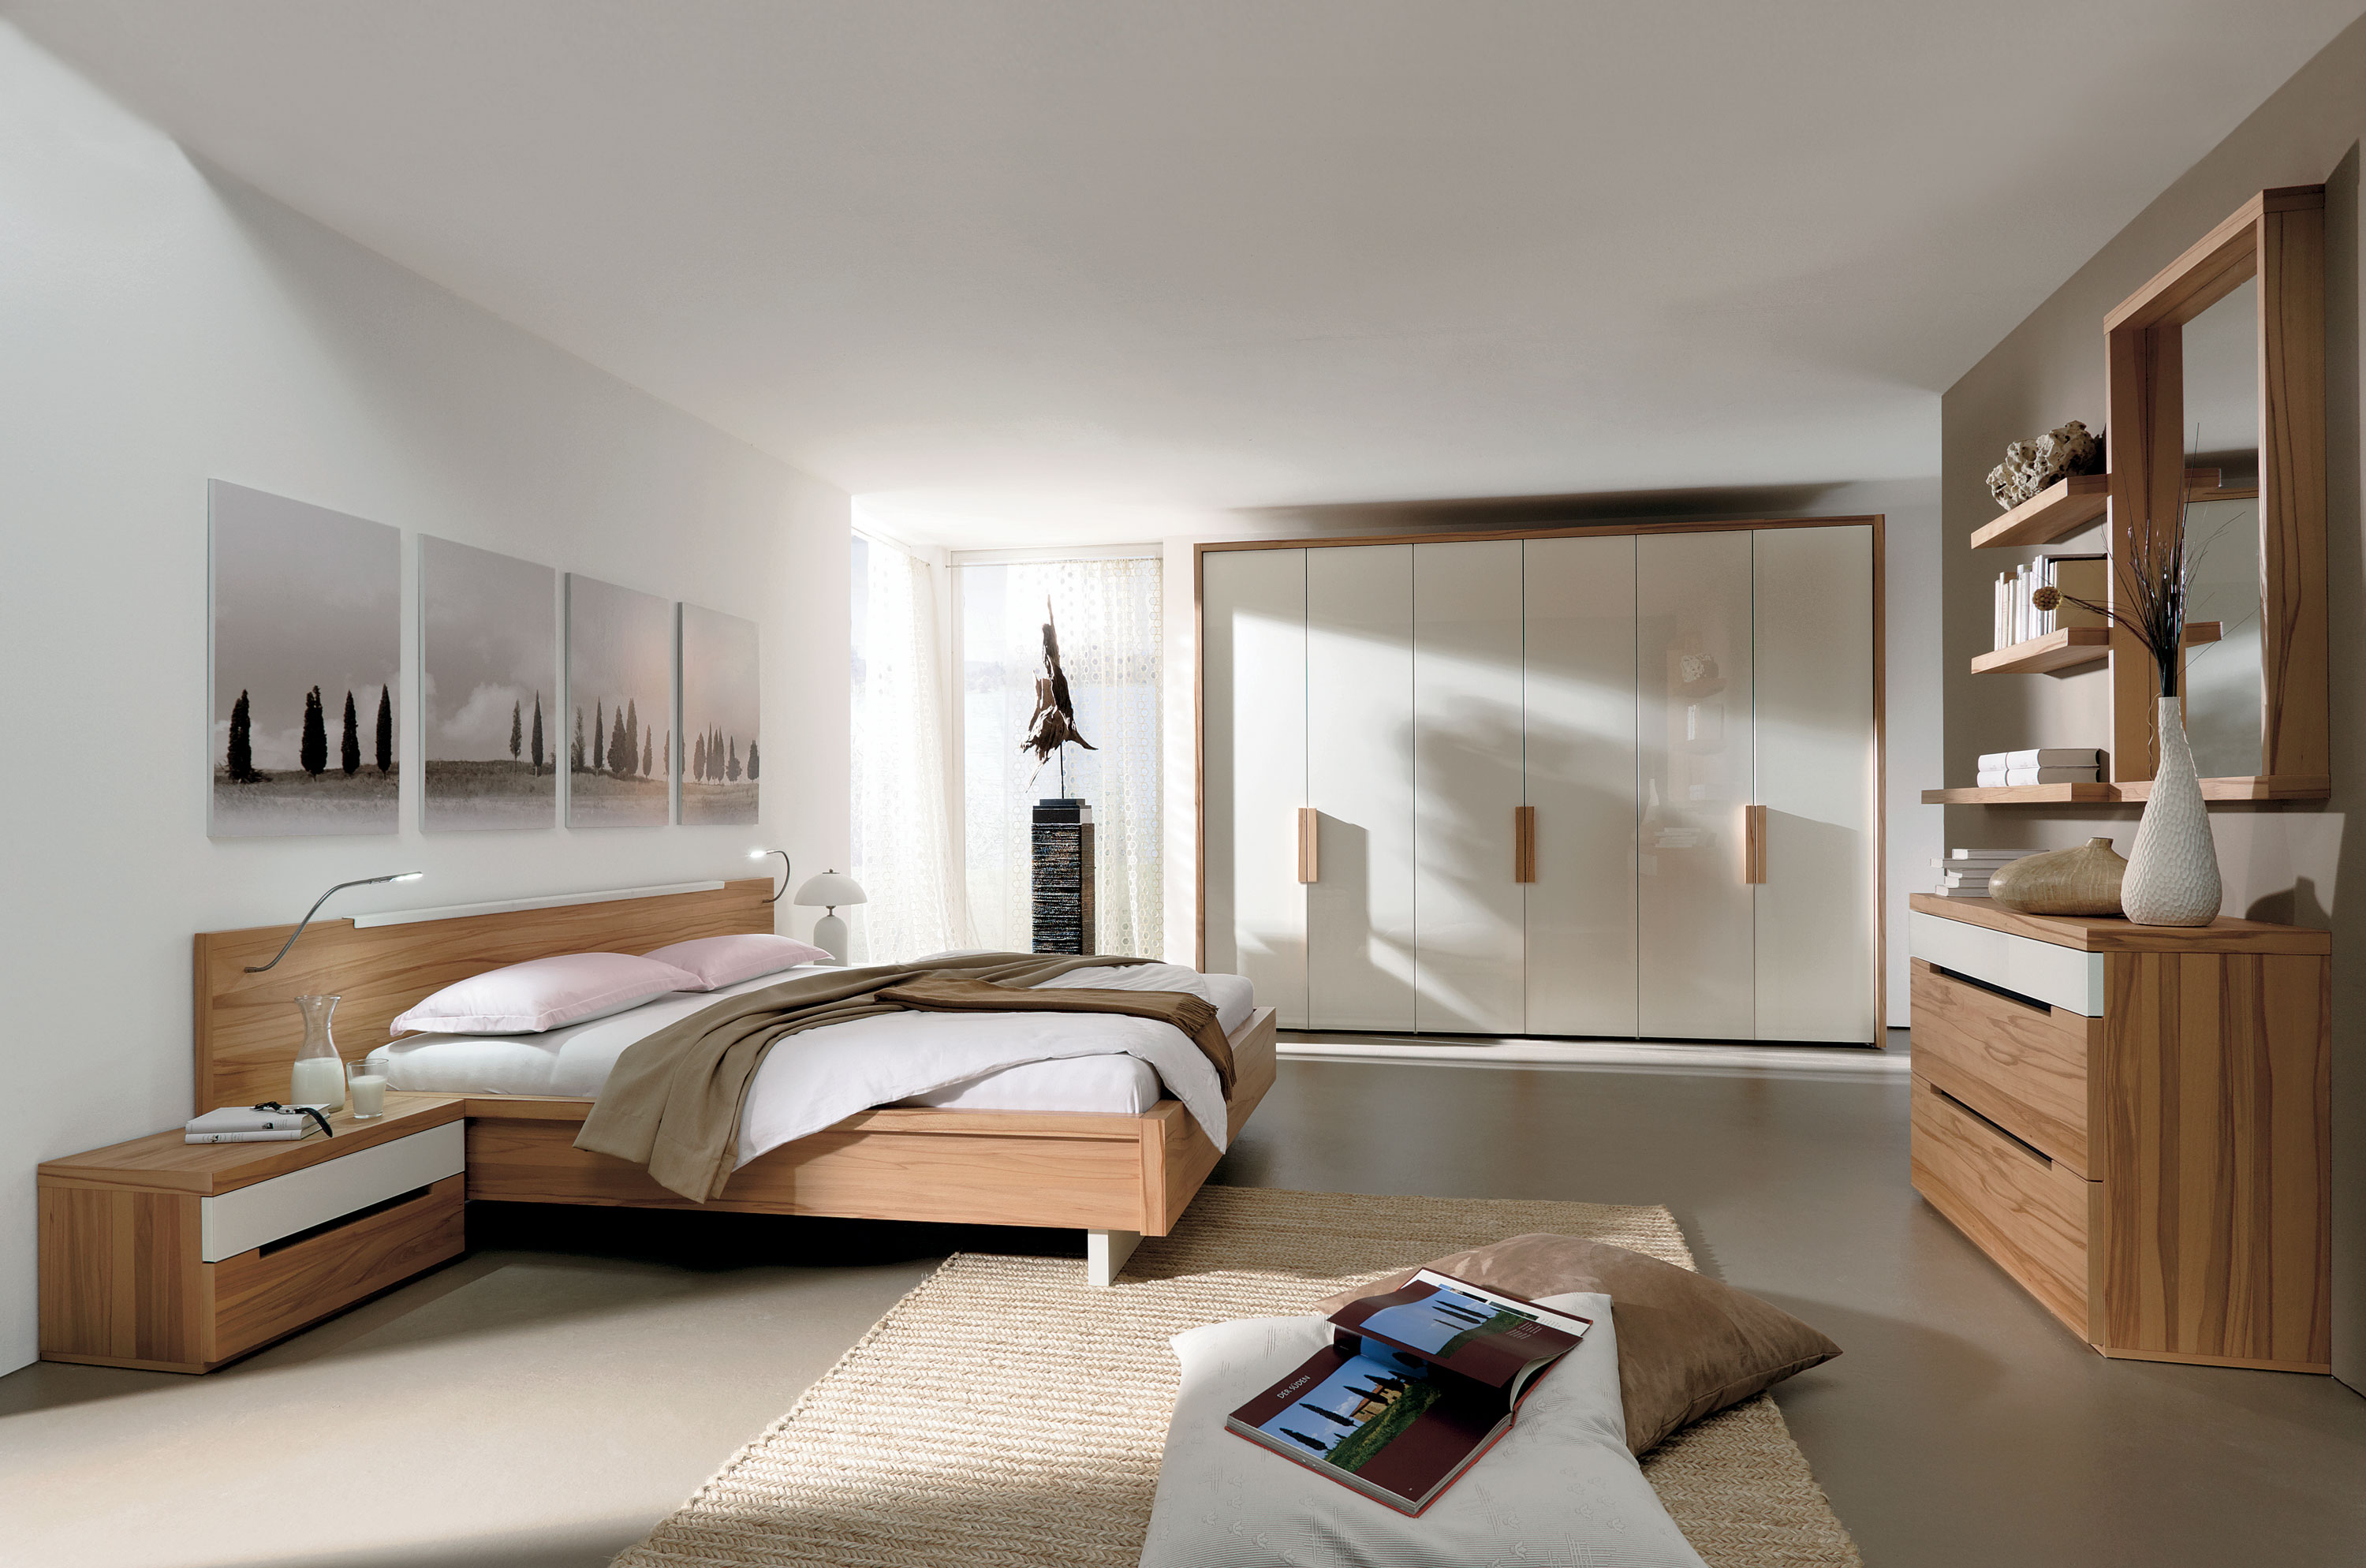 huelsta-moebel-hulsta-furniture-CEPOSI-Schlafzimmer-sleeping-Strukturbuche-Hochglanz_weiss-structured_beech-high_gloss_white